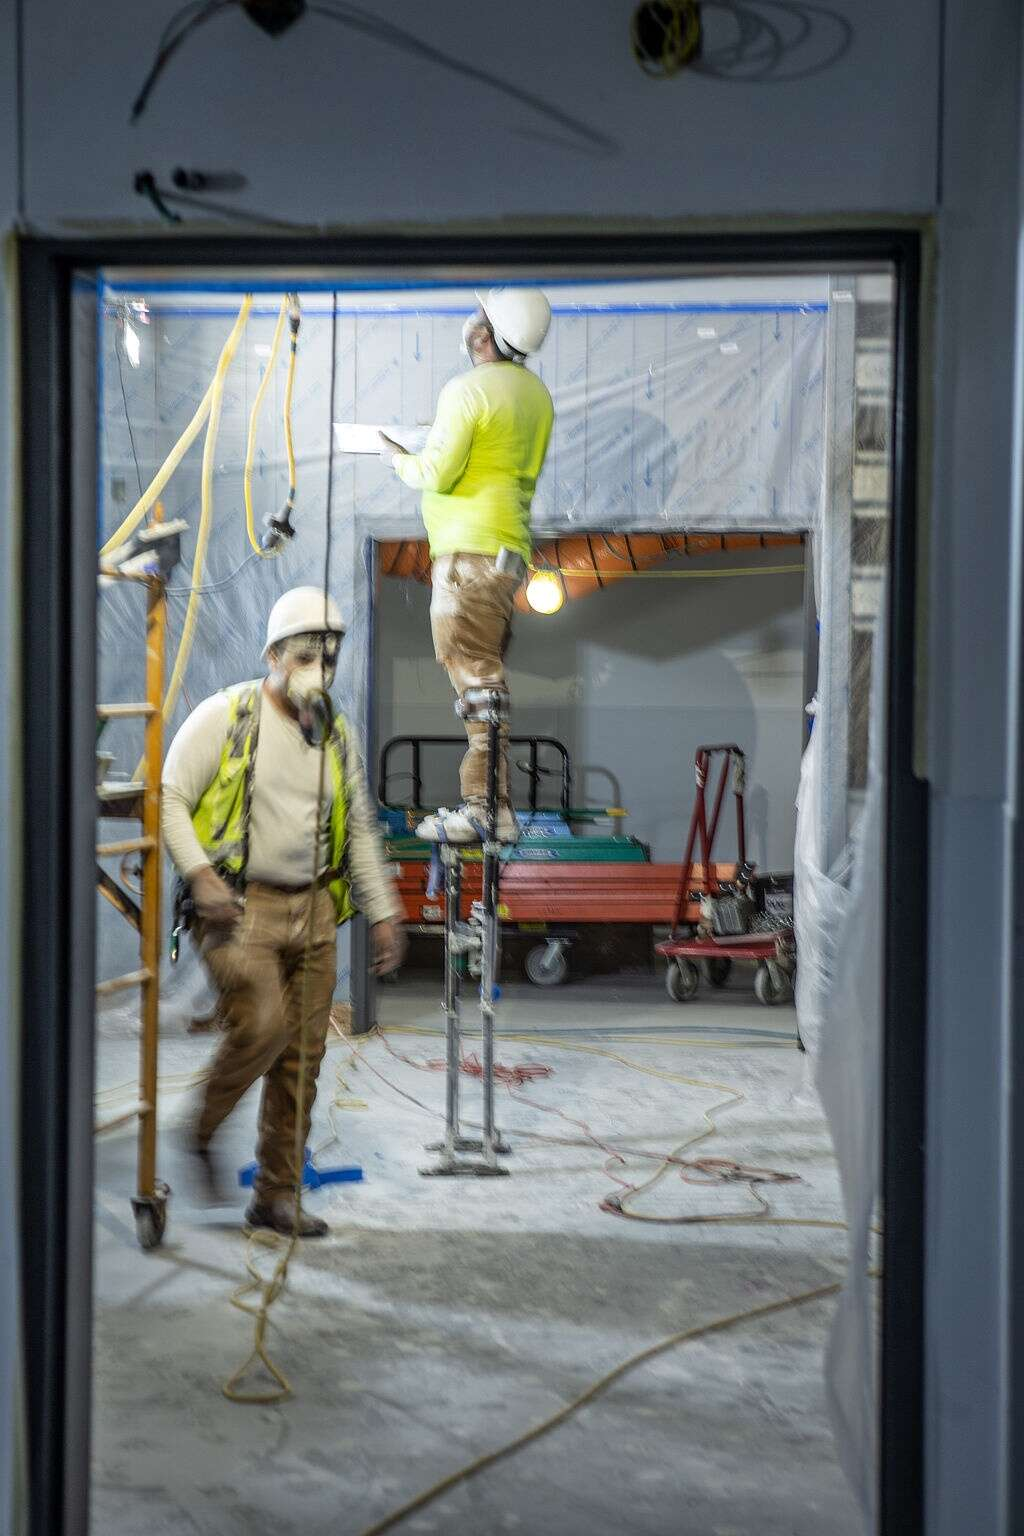 Construction crews work inside one of the operating rooms located within Vail Health's new medical center in Dillon on Friday, August 27, 2021. Once completed, the center will have four operating rooms that'll focus on orthopedic and pain management procedures.   Photo by Michael Yearout / Michael Yearout Photography